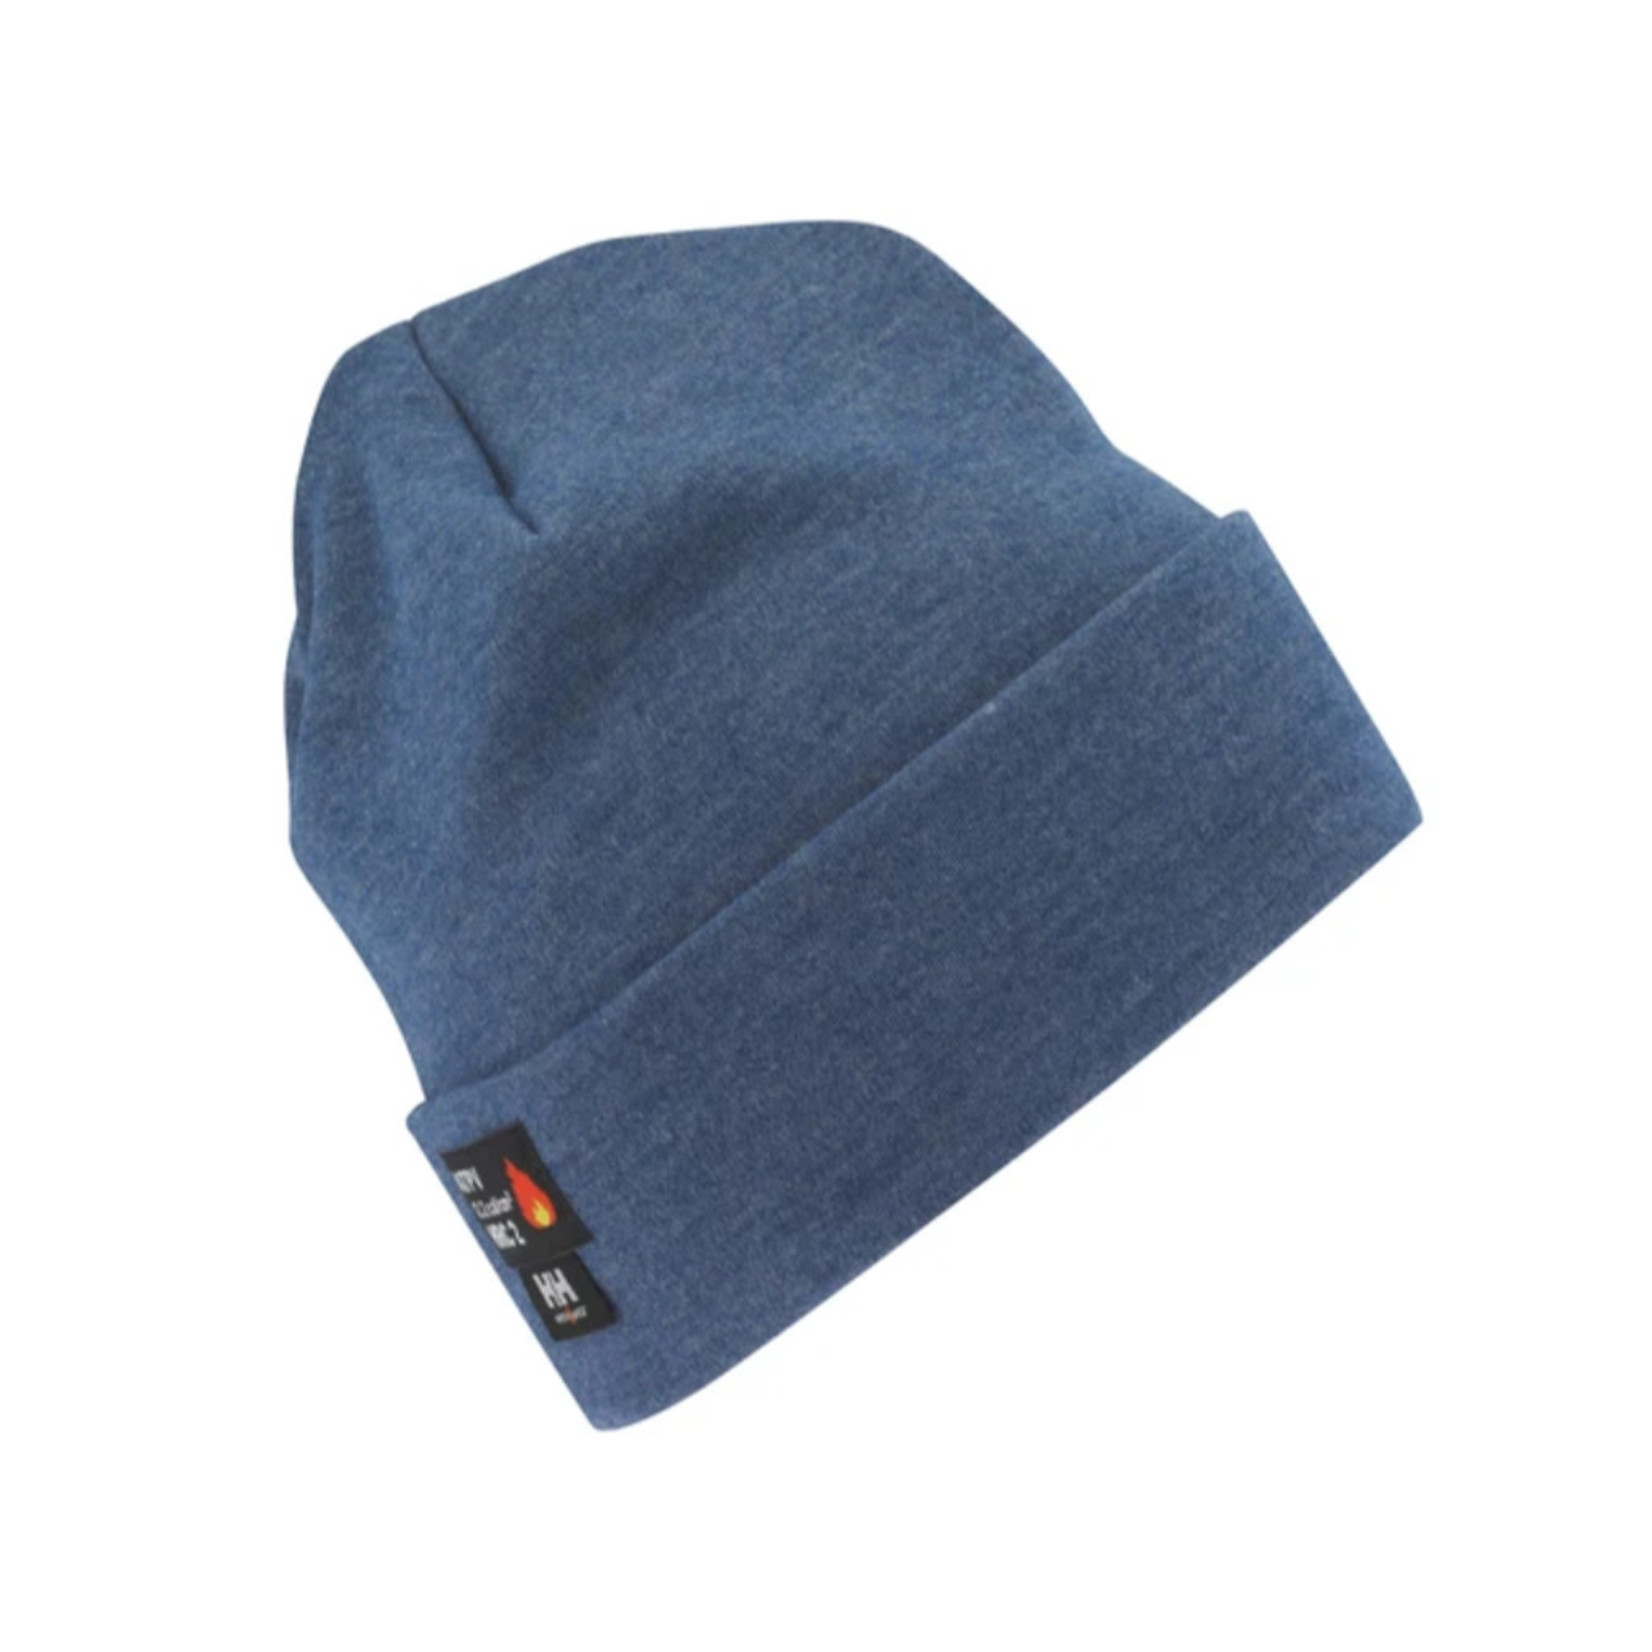 Helly Hansen Helly Hanson Fargo Flame Resistant Tuque Hat 79895 Royal Blue